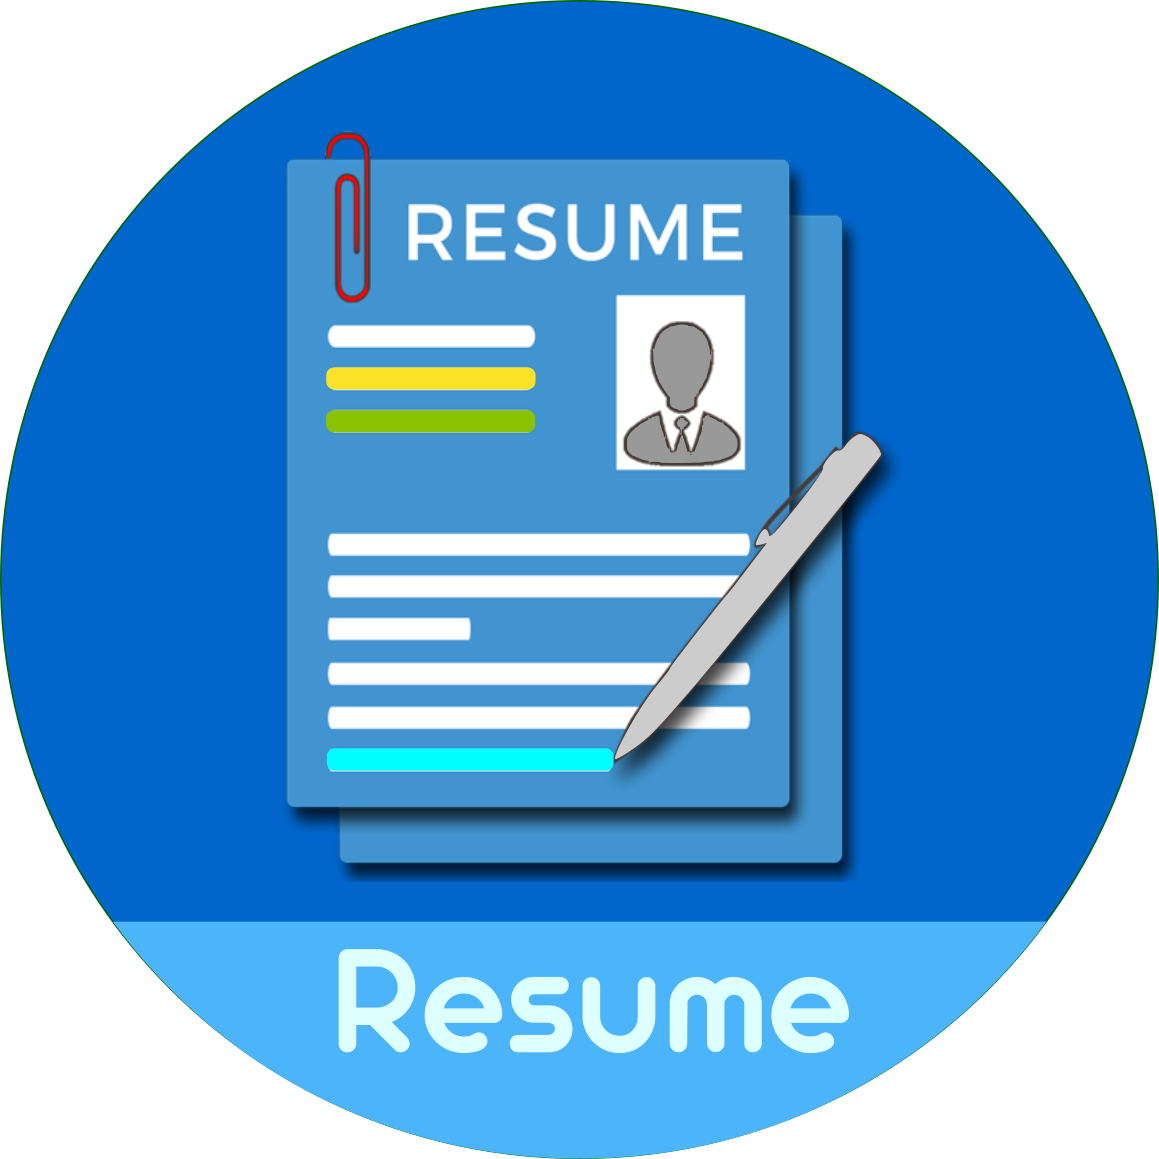 Resume-services.png